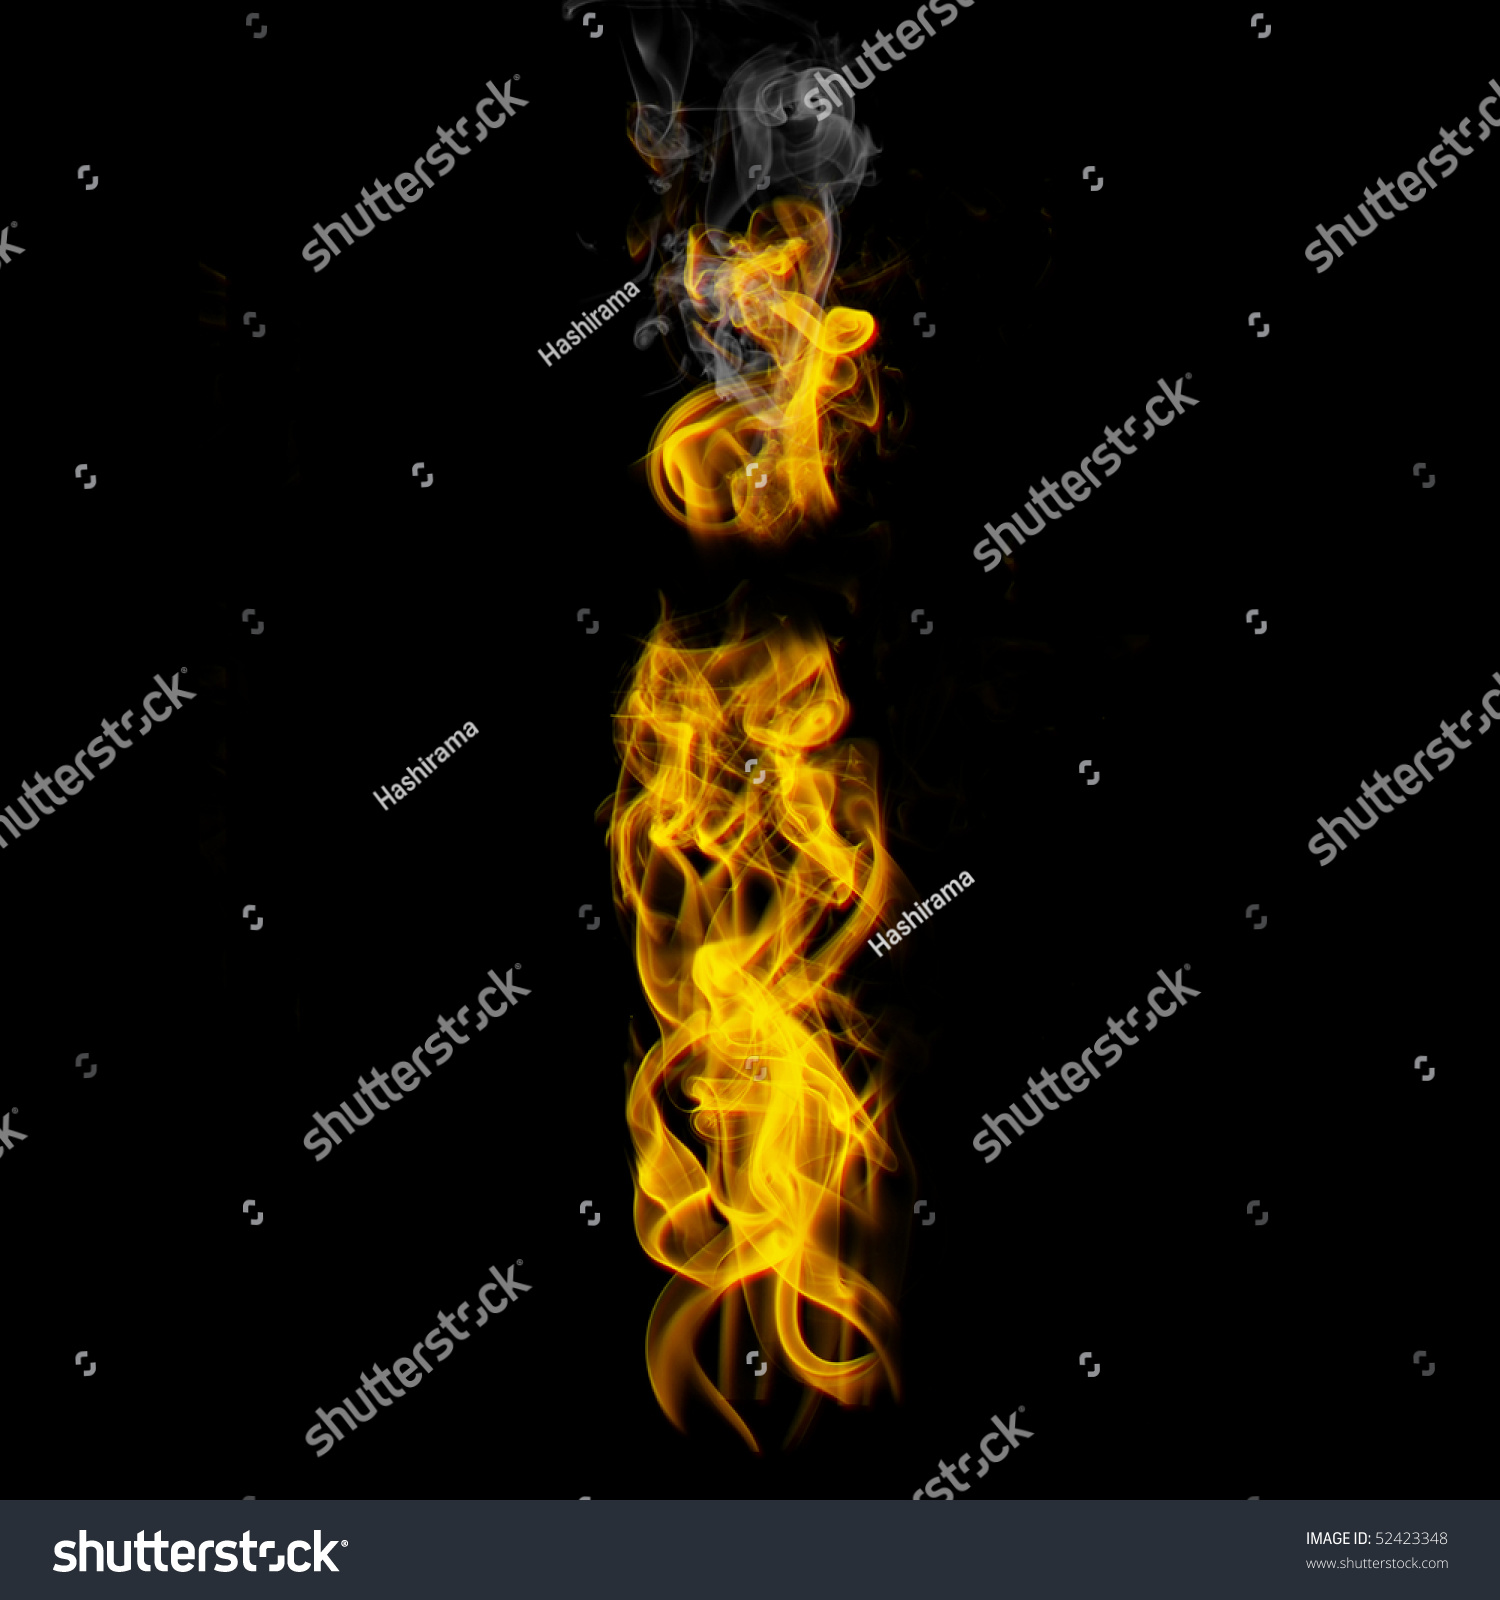 Burning letter check all fire letters stock illustration 52423348 burning letter check all fire letters stock illustration 52423348 shutterstock thecheapjerseys Images